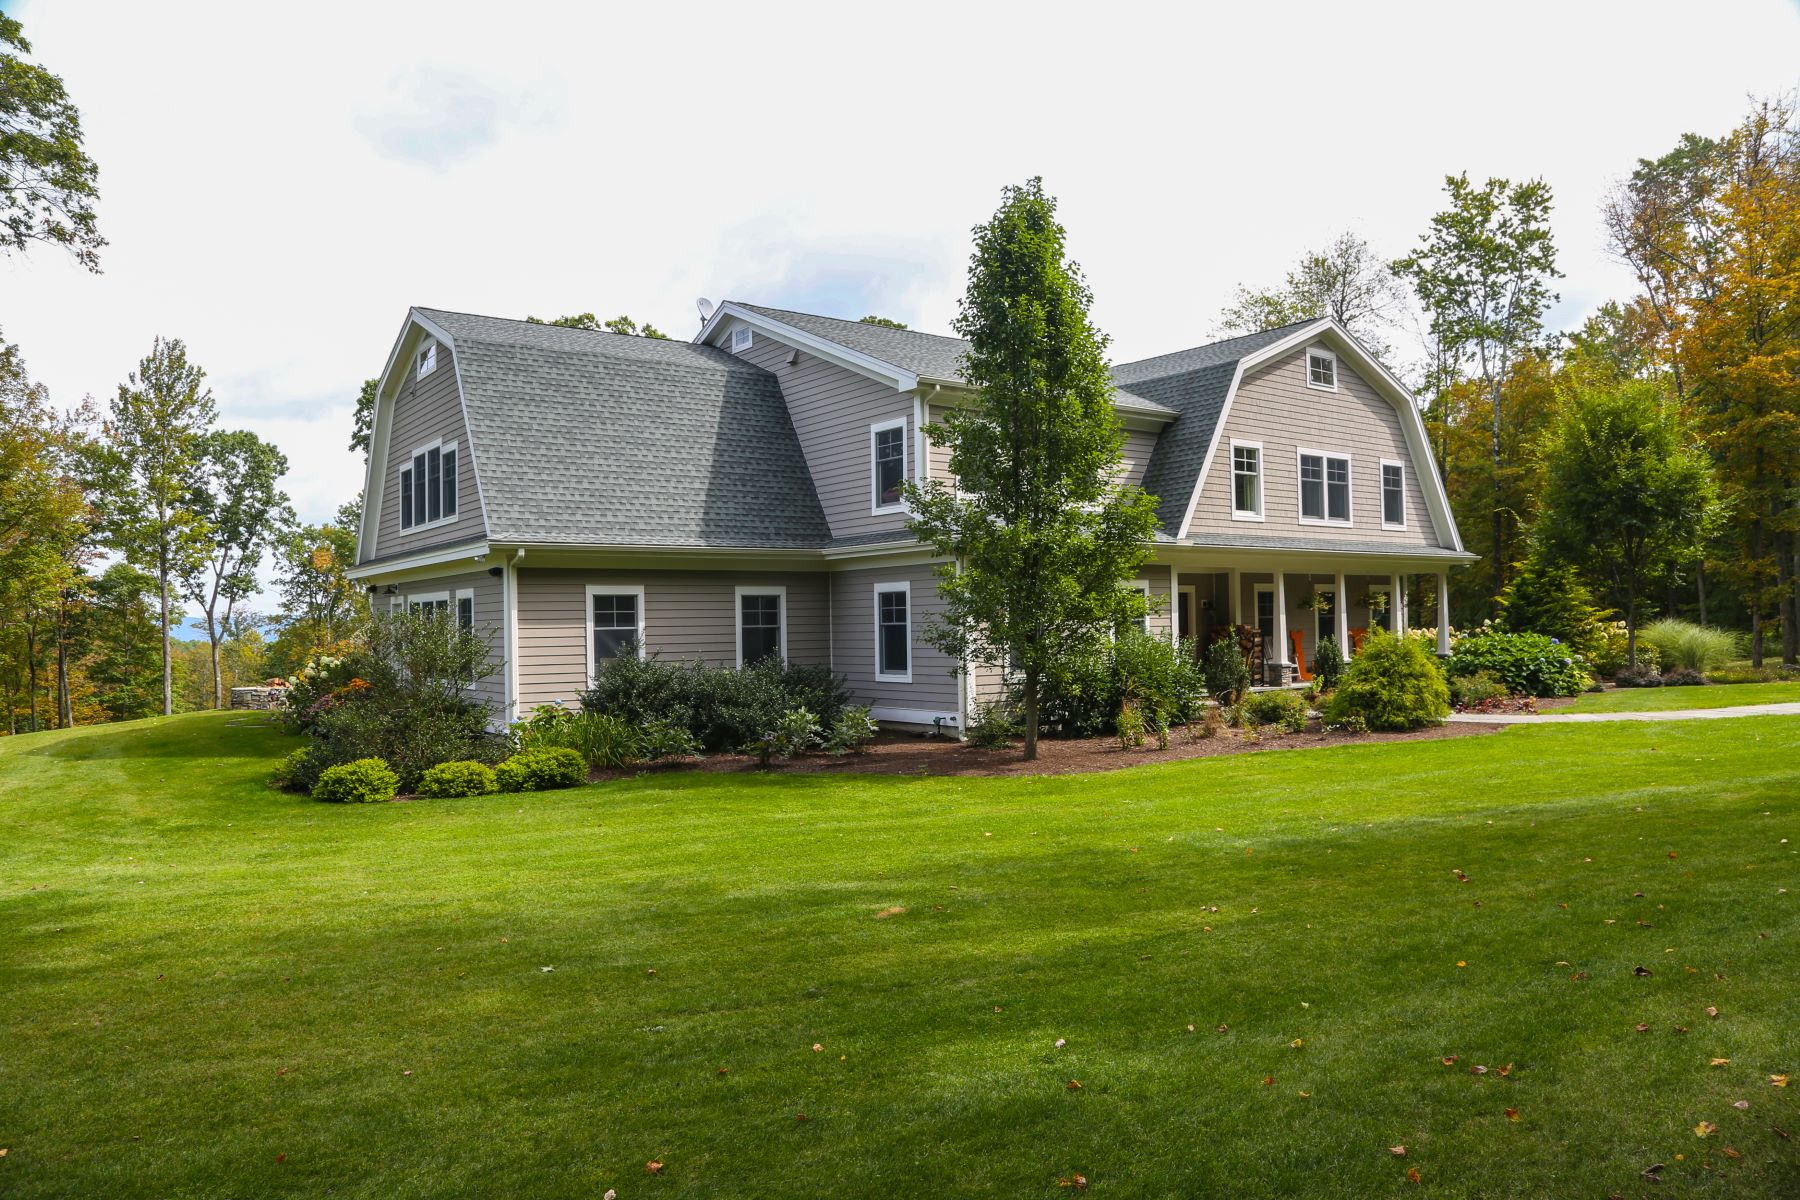 Single Family Homes for Active at Hamptons Inspired Contemporary On 16 Plus Acres 34 Oxbow Rd Egremont, Massachusetts 01230 United States